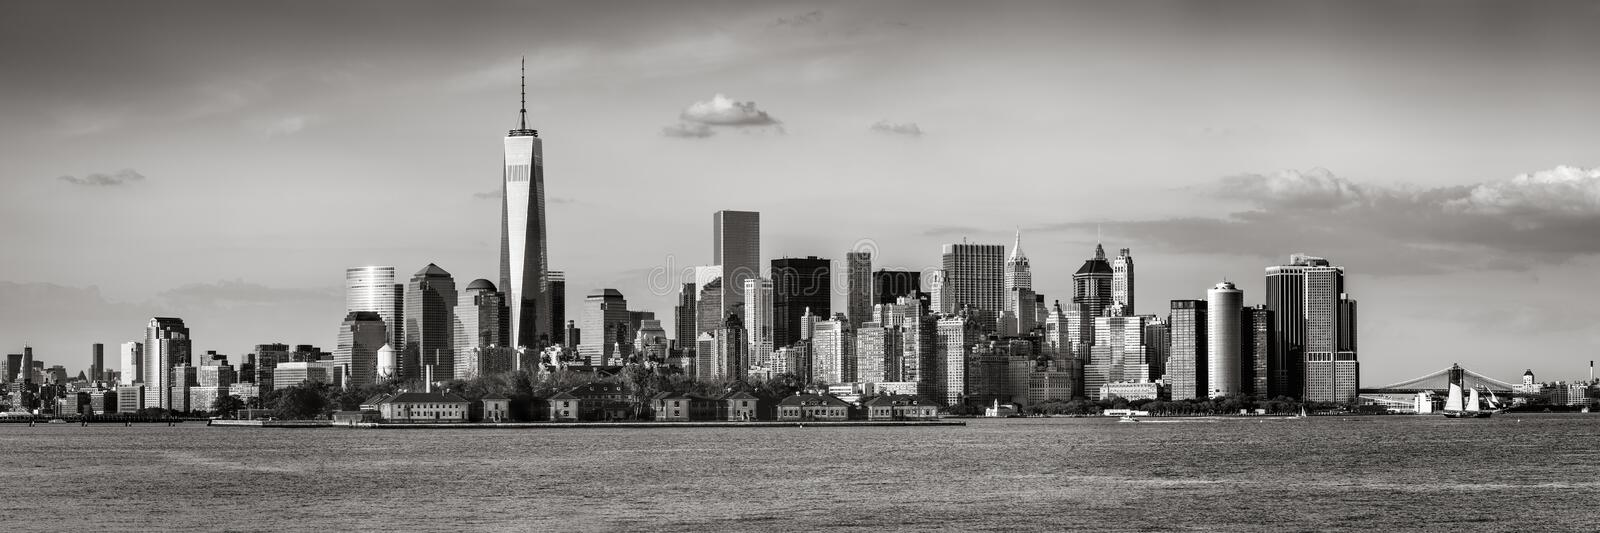 Panoramic view of Lower Manhattan and New York City skyscrapers Black & White stock photos